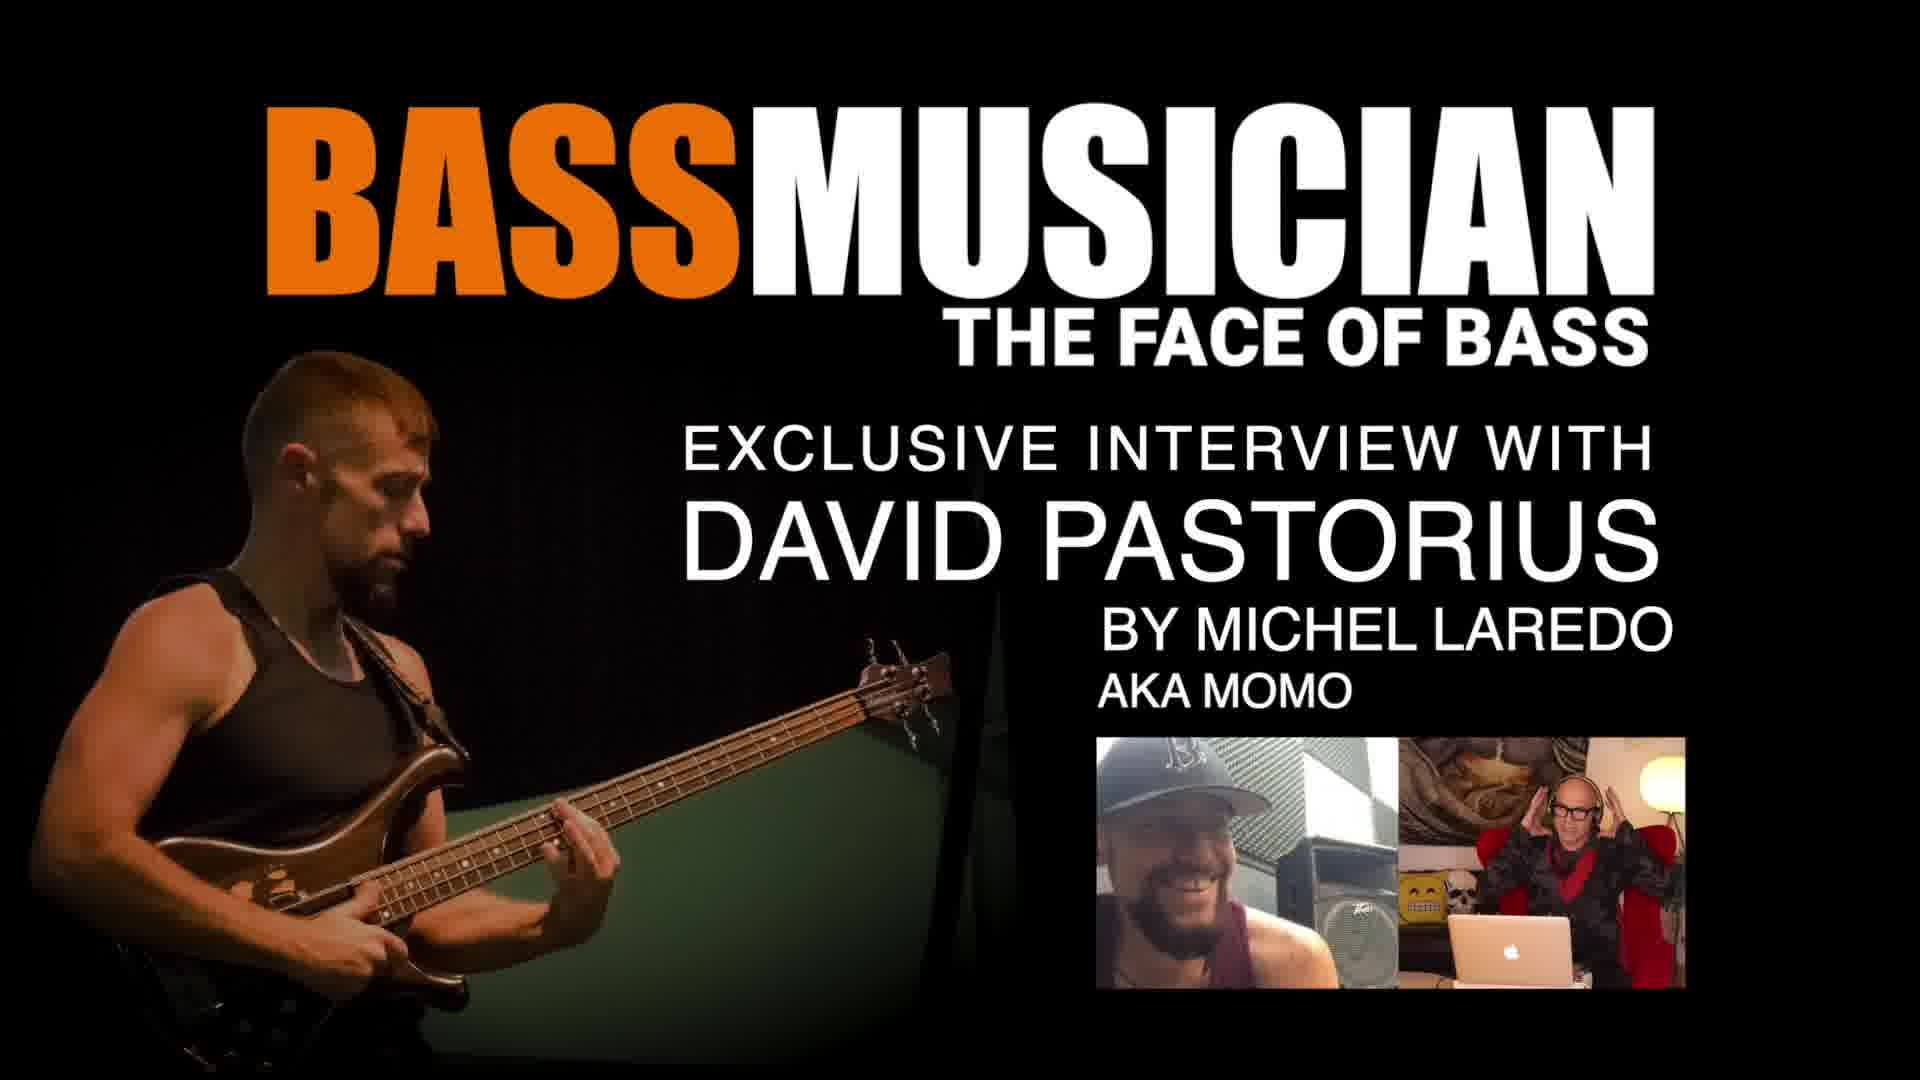 You guys got to checkout  this awesome David Pastorius interview i did with this killer bass player. It goes by fast and sweet and is full of Bass treats and surprises that will tickle your love of bottom end and then some. Check it out and spread th